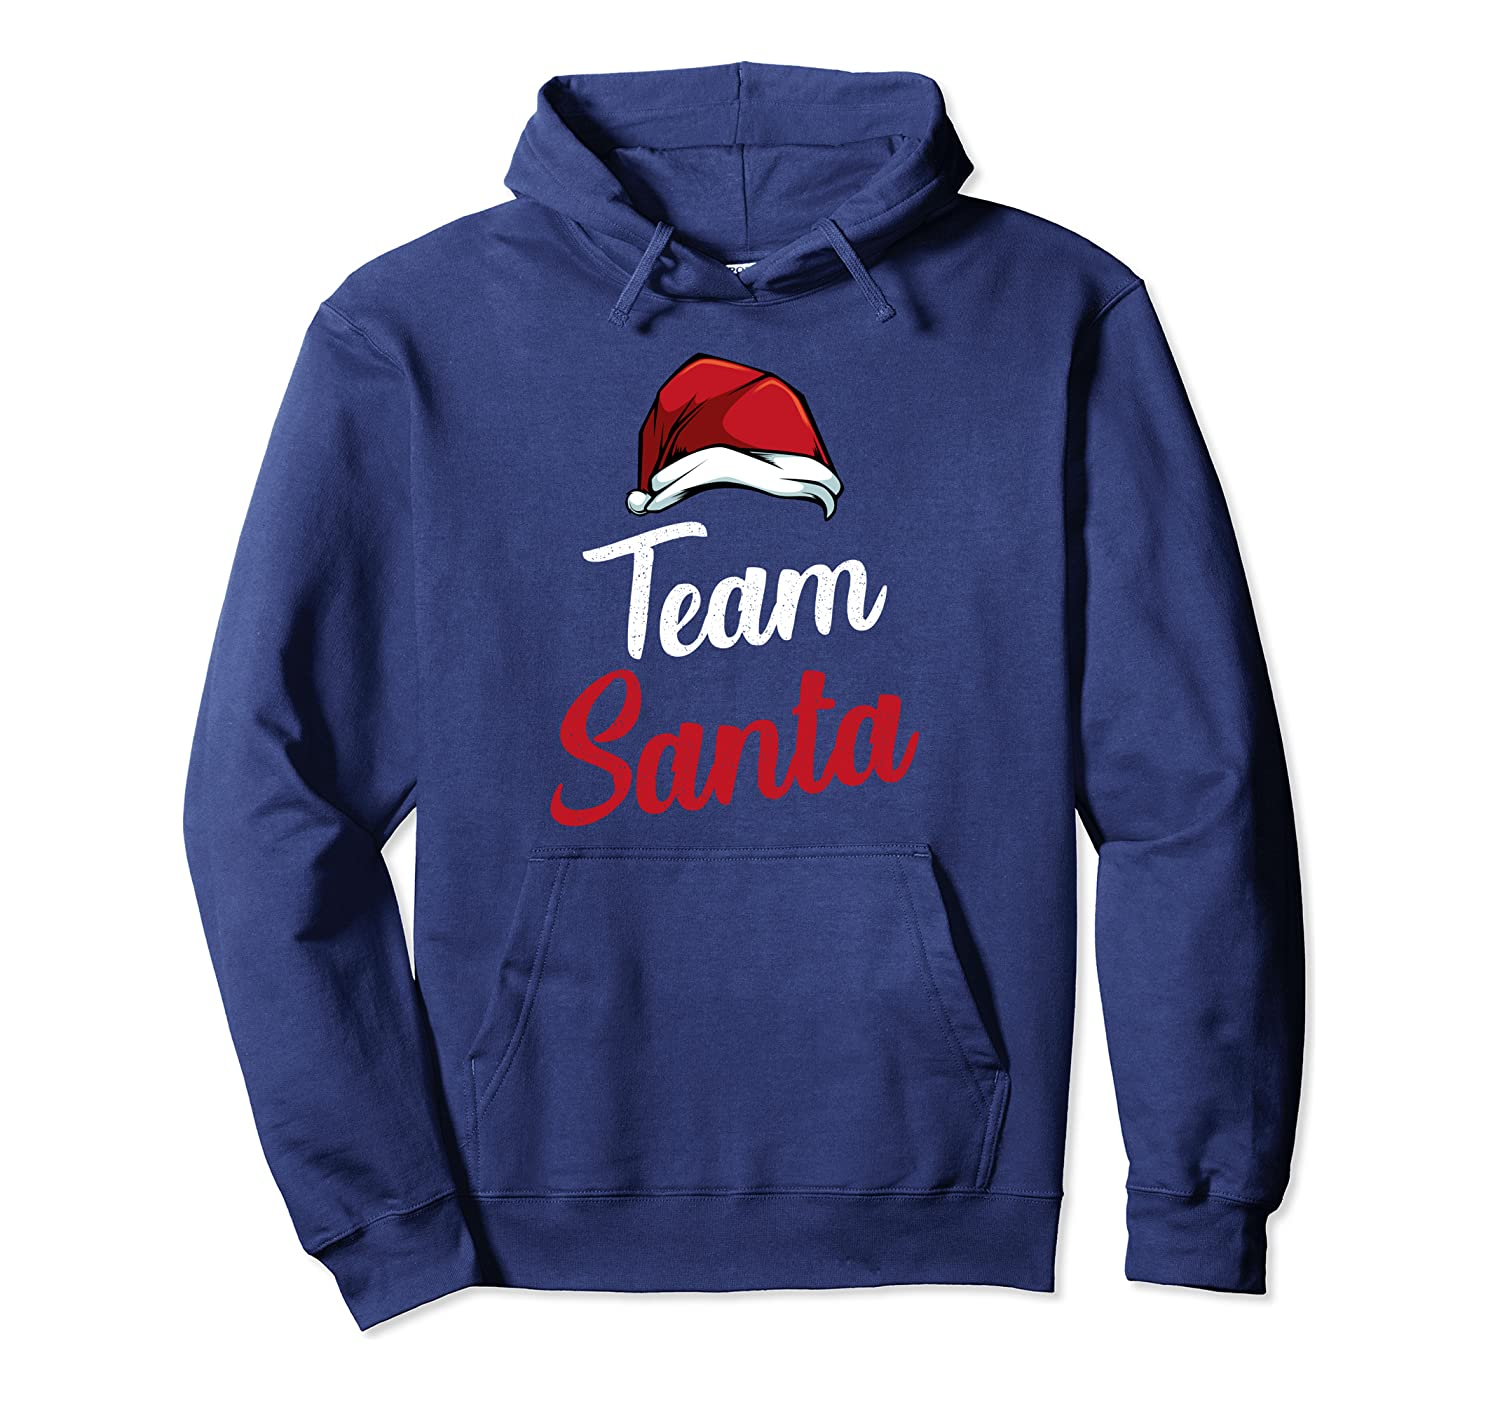 Team Santa Family Matching Merry Christmas Celebration Funny Pullover Hoodie